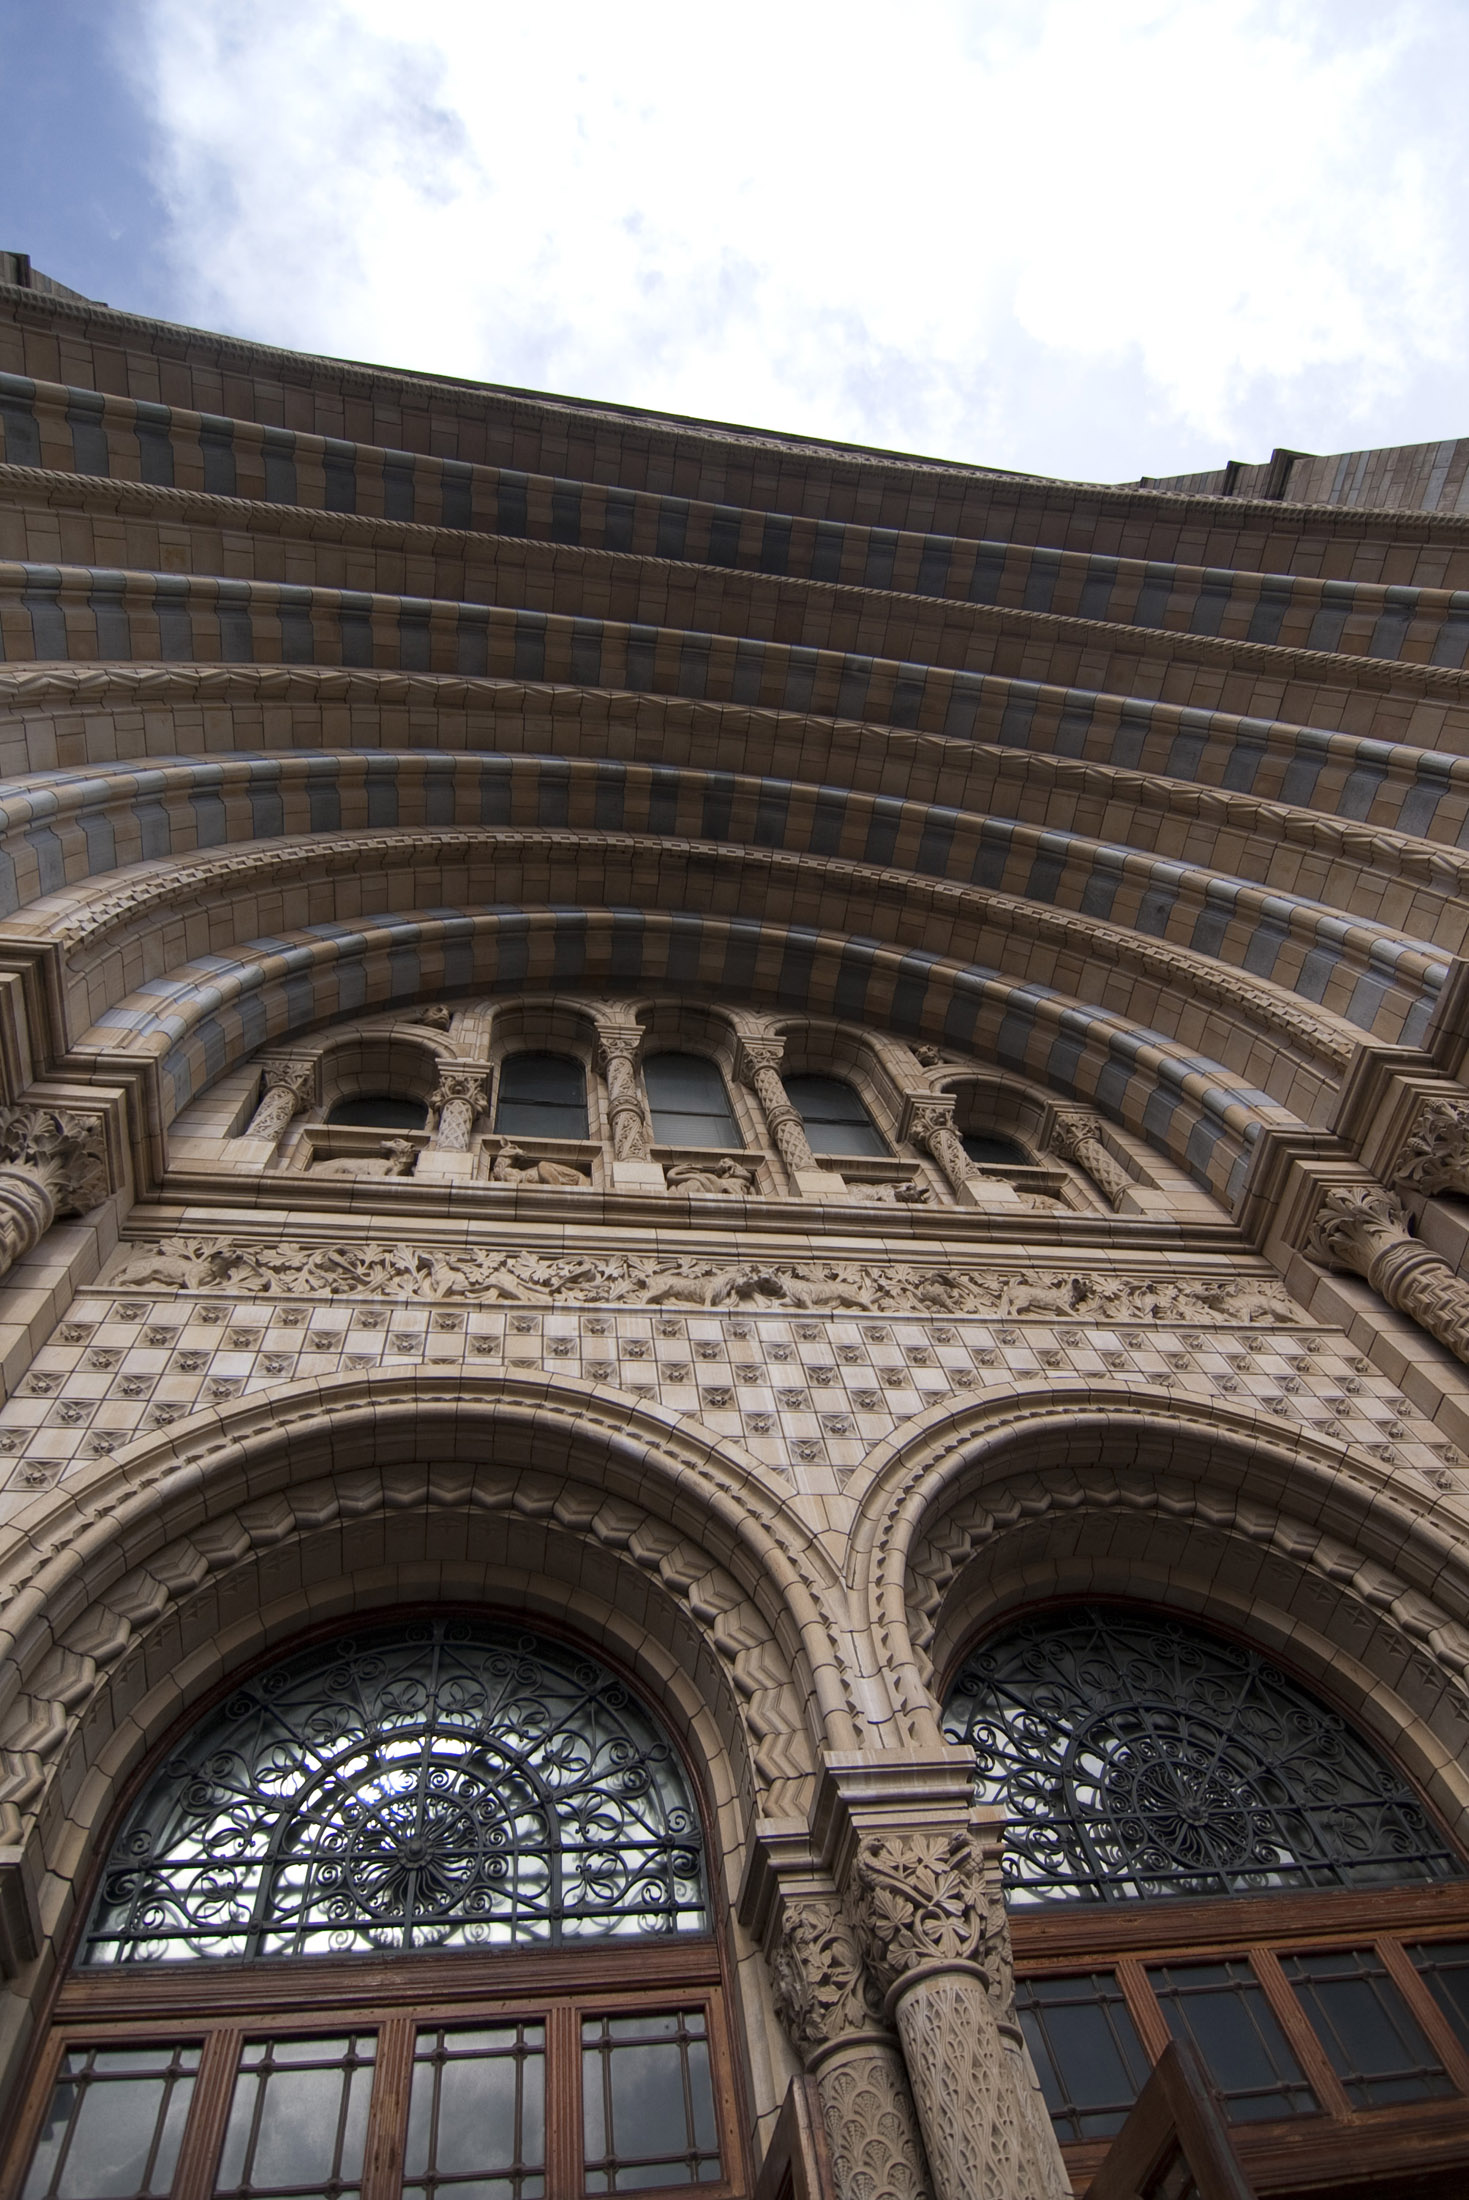 Romanesque style grand entrance to londons natural history museum by architect Alfred Waterhouse